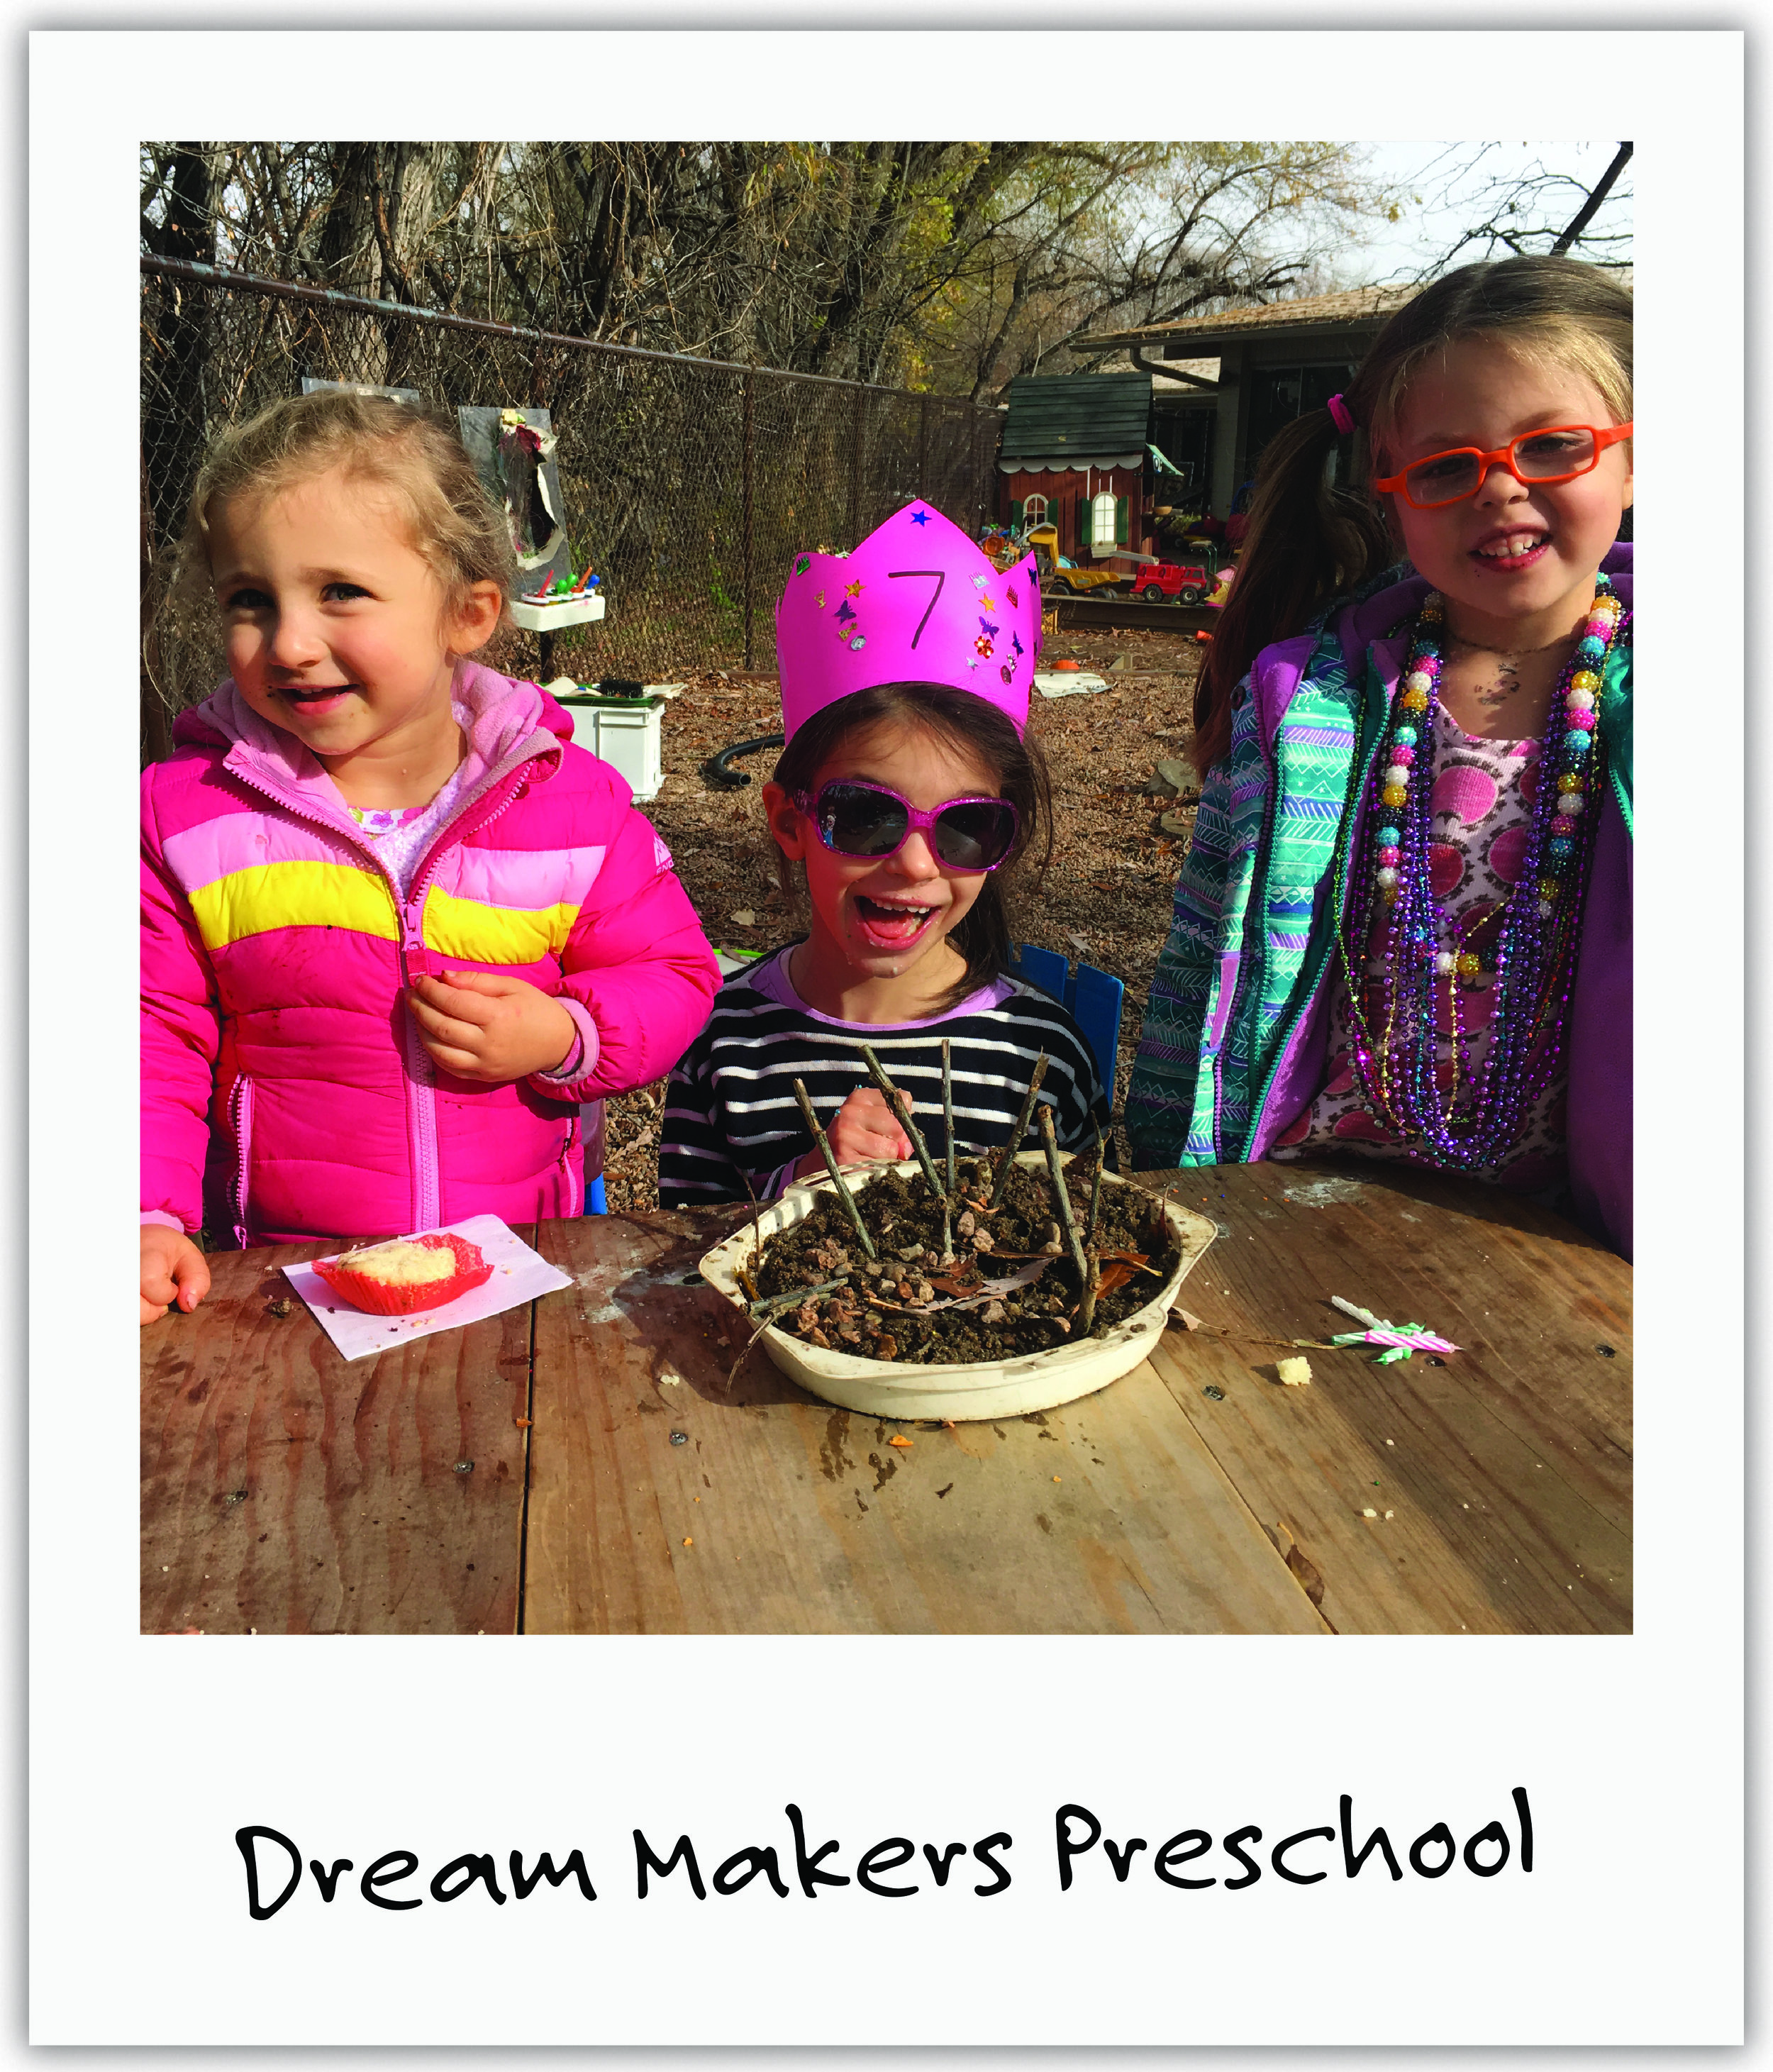 Dream Makers preschool has welcomed Mila and Azlan with open arms, always conscious of making Mila feel normal and loved, and supporting our fundraising in every way that they can.